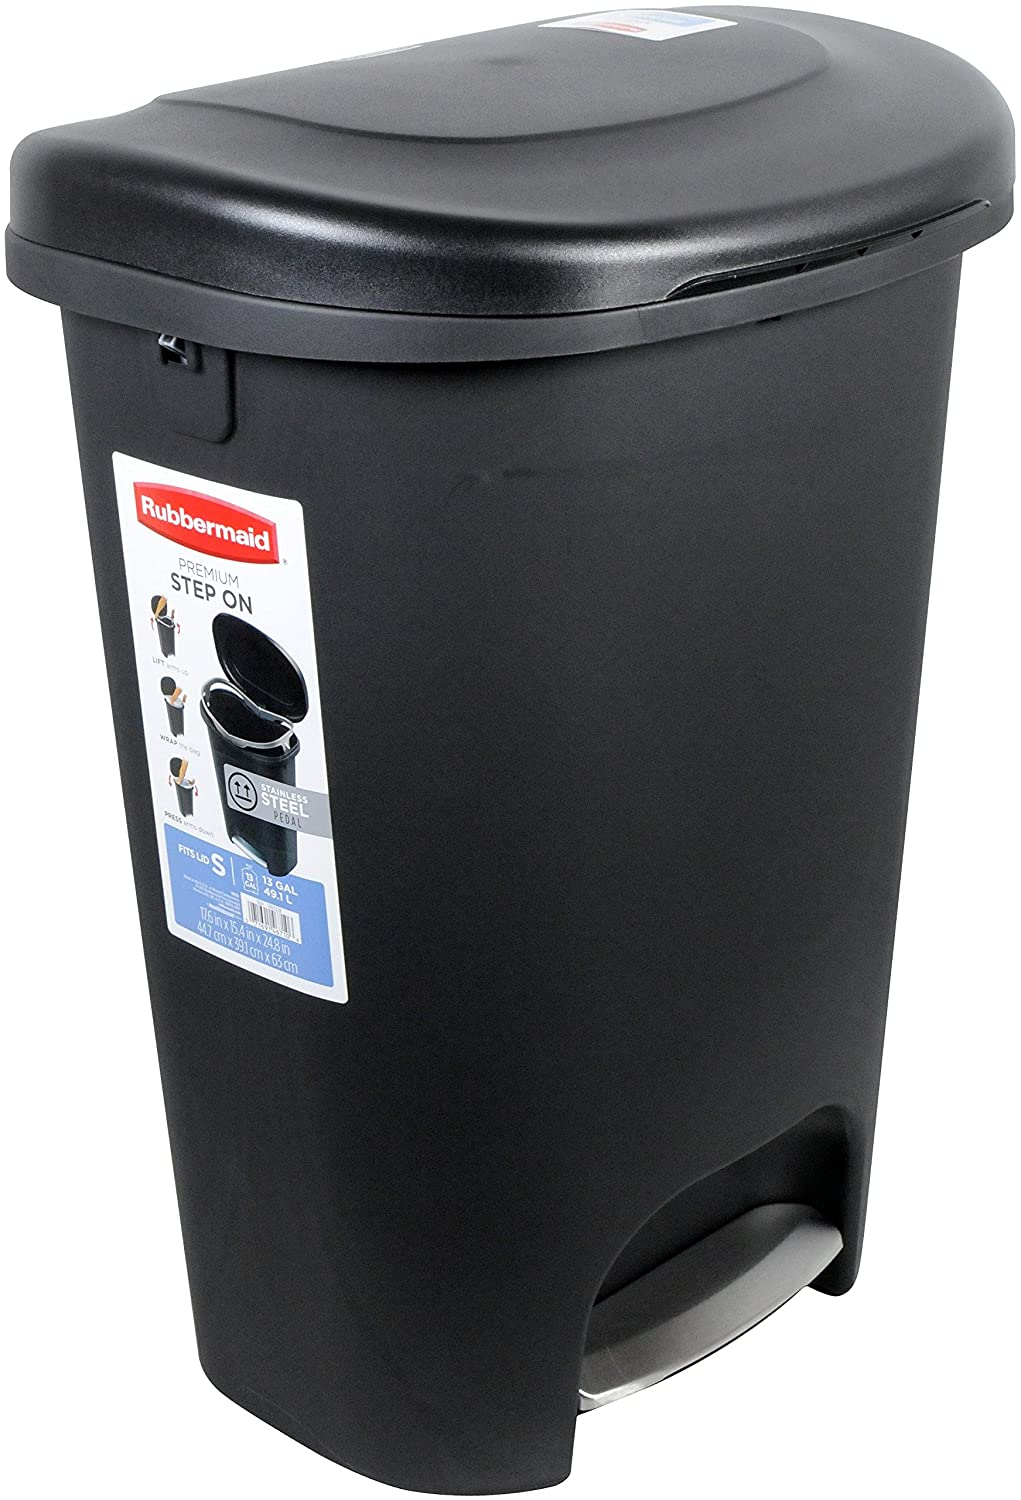 Wastebasket Trash Can Bin Garbage Plastic Step on 13